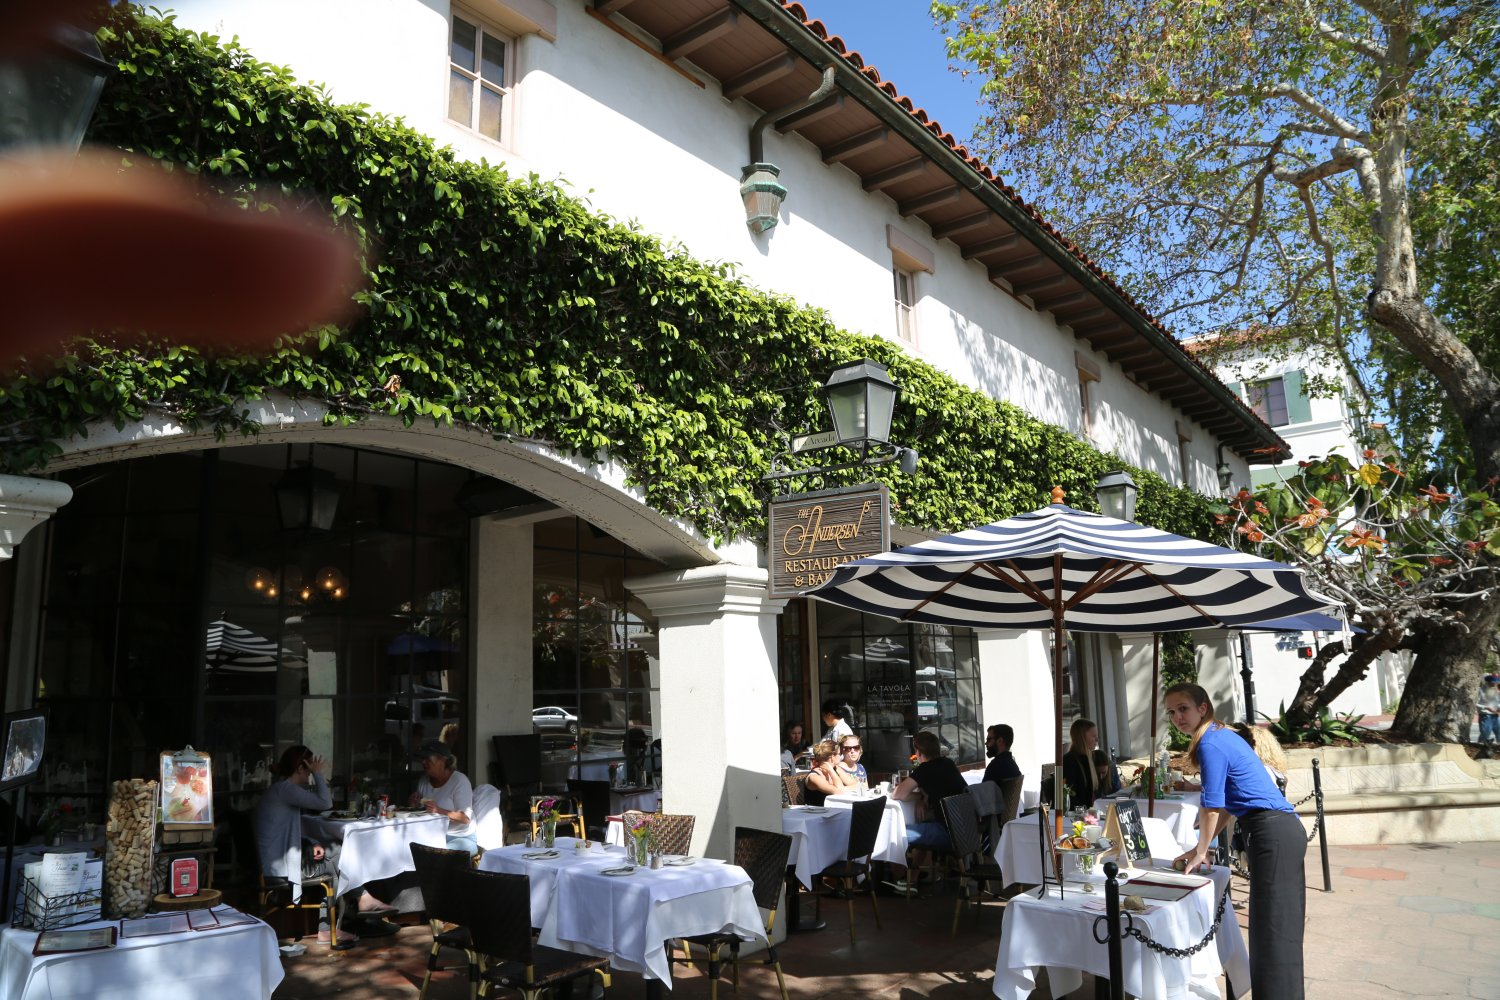 Anderson S Restaurant And Bar Has Been Open For Business More Then 40 Years This Santa Barbara Insution Is Located At 1106 State Street